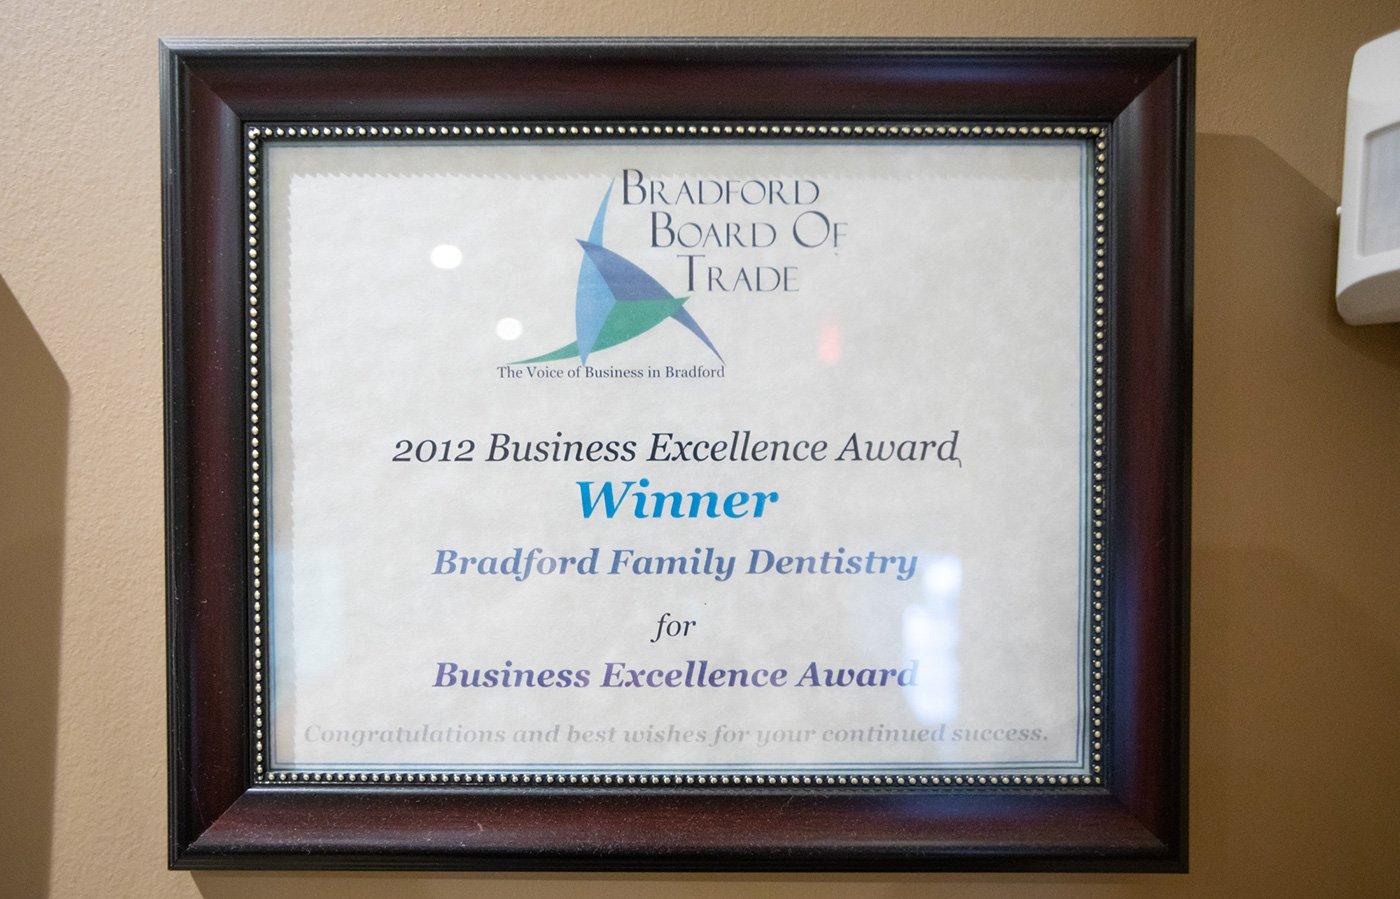 2012 Business Excellence Award - Bradford Board of Trade